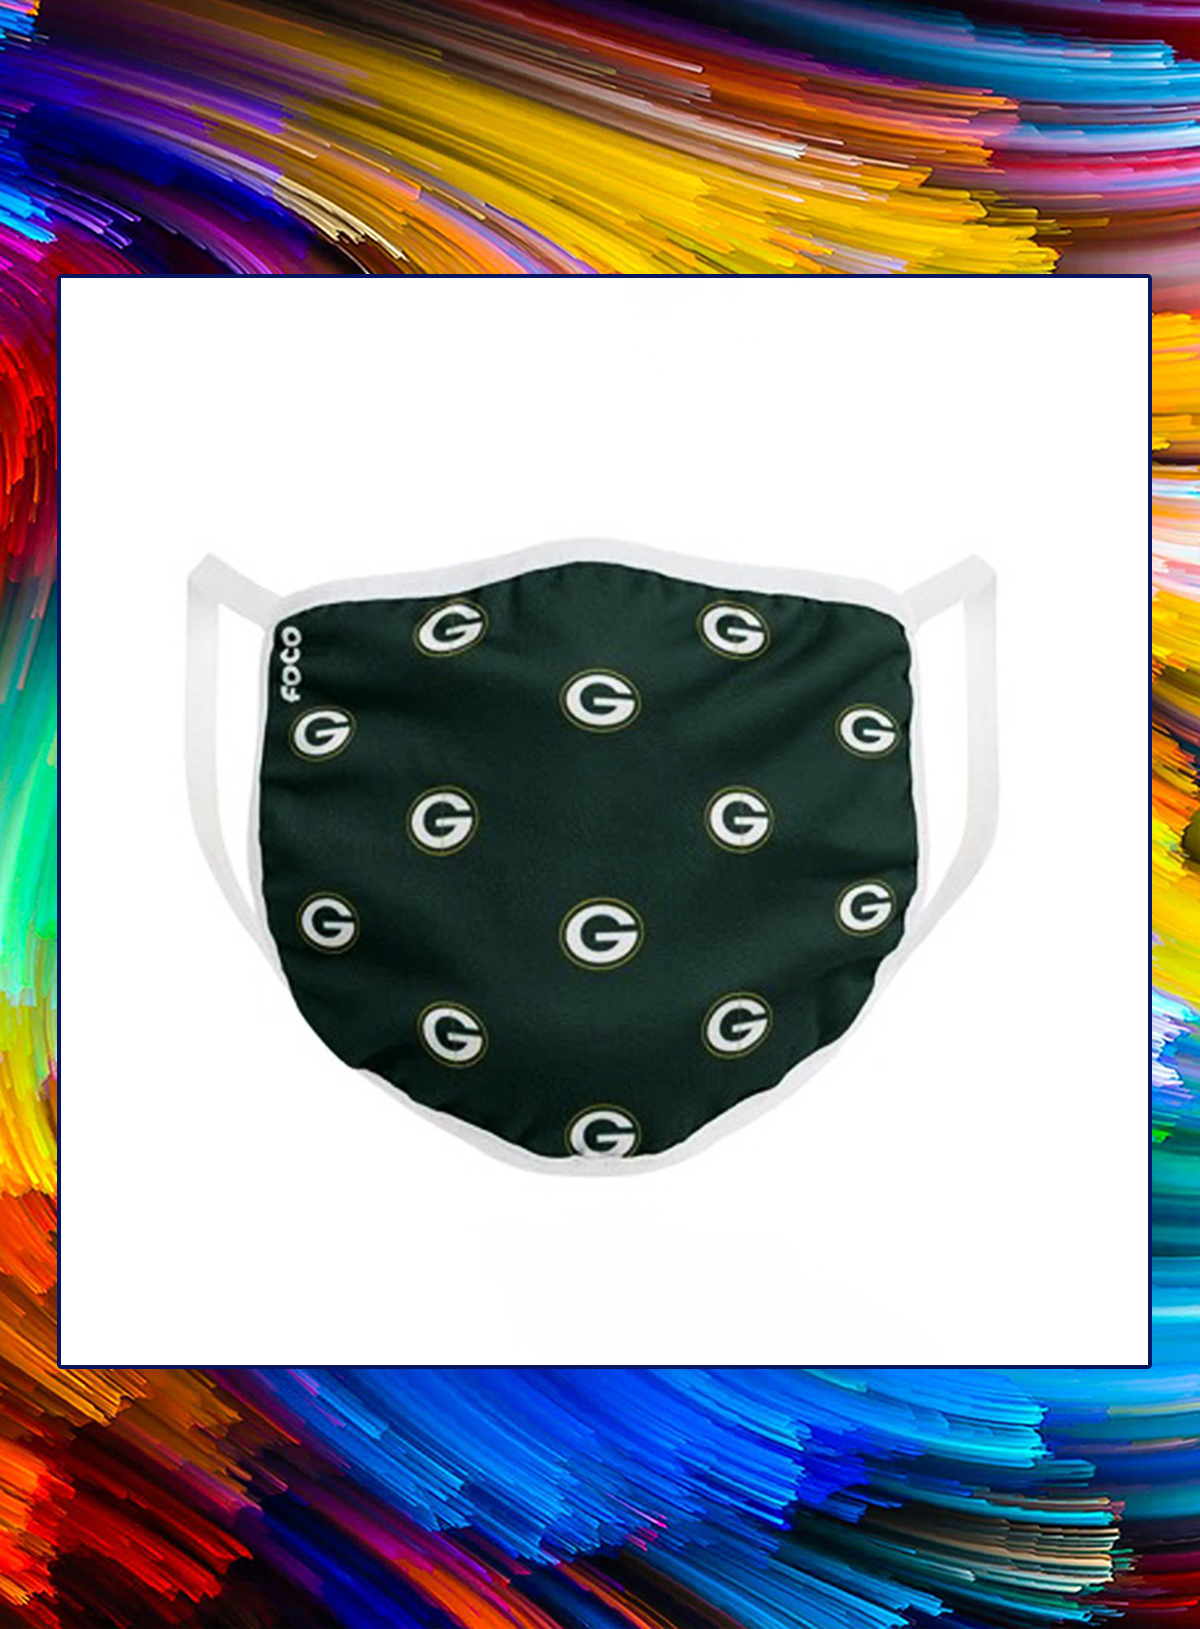 Green bay packers nfl cloth mask - Picture 1